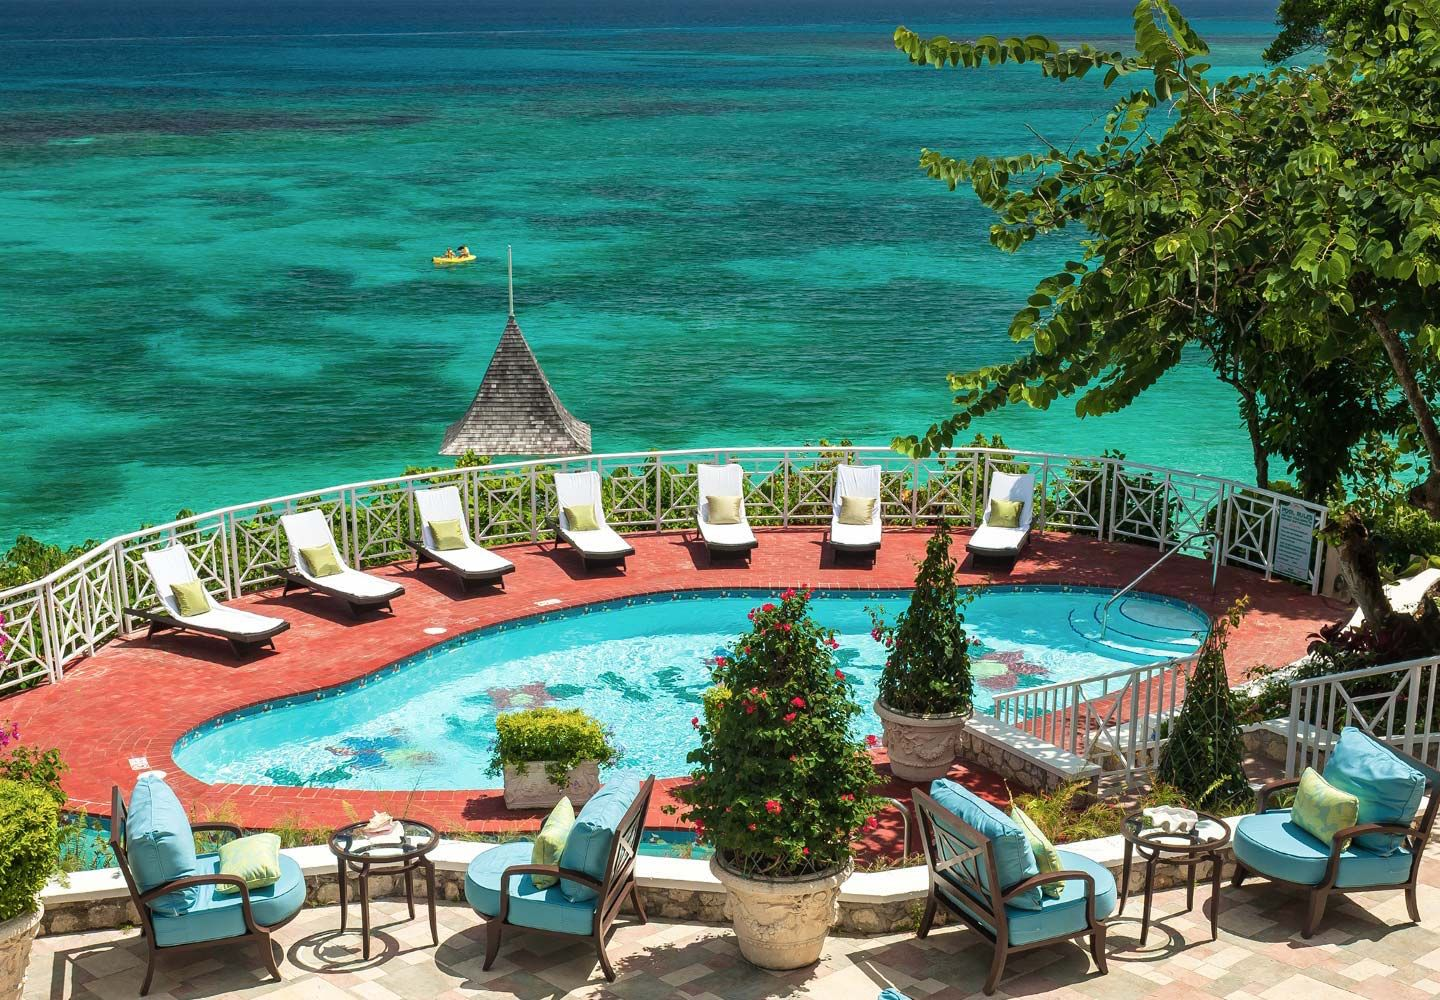 15 best resorts in the world luxury all inclusive hotels